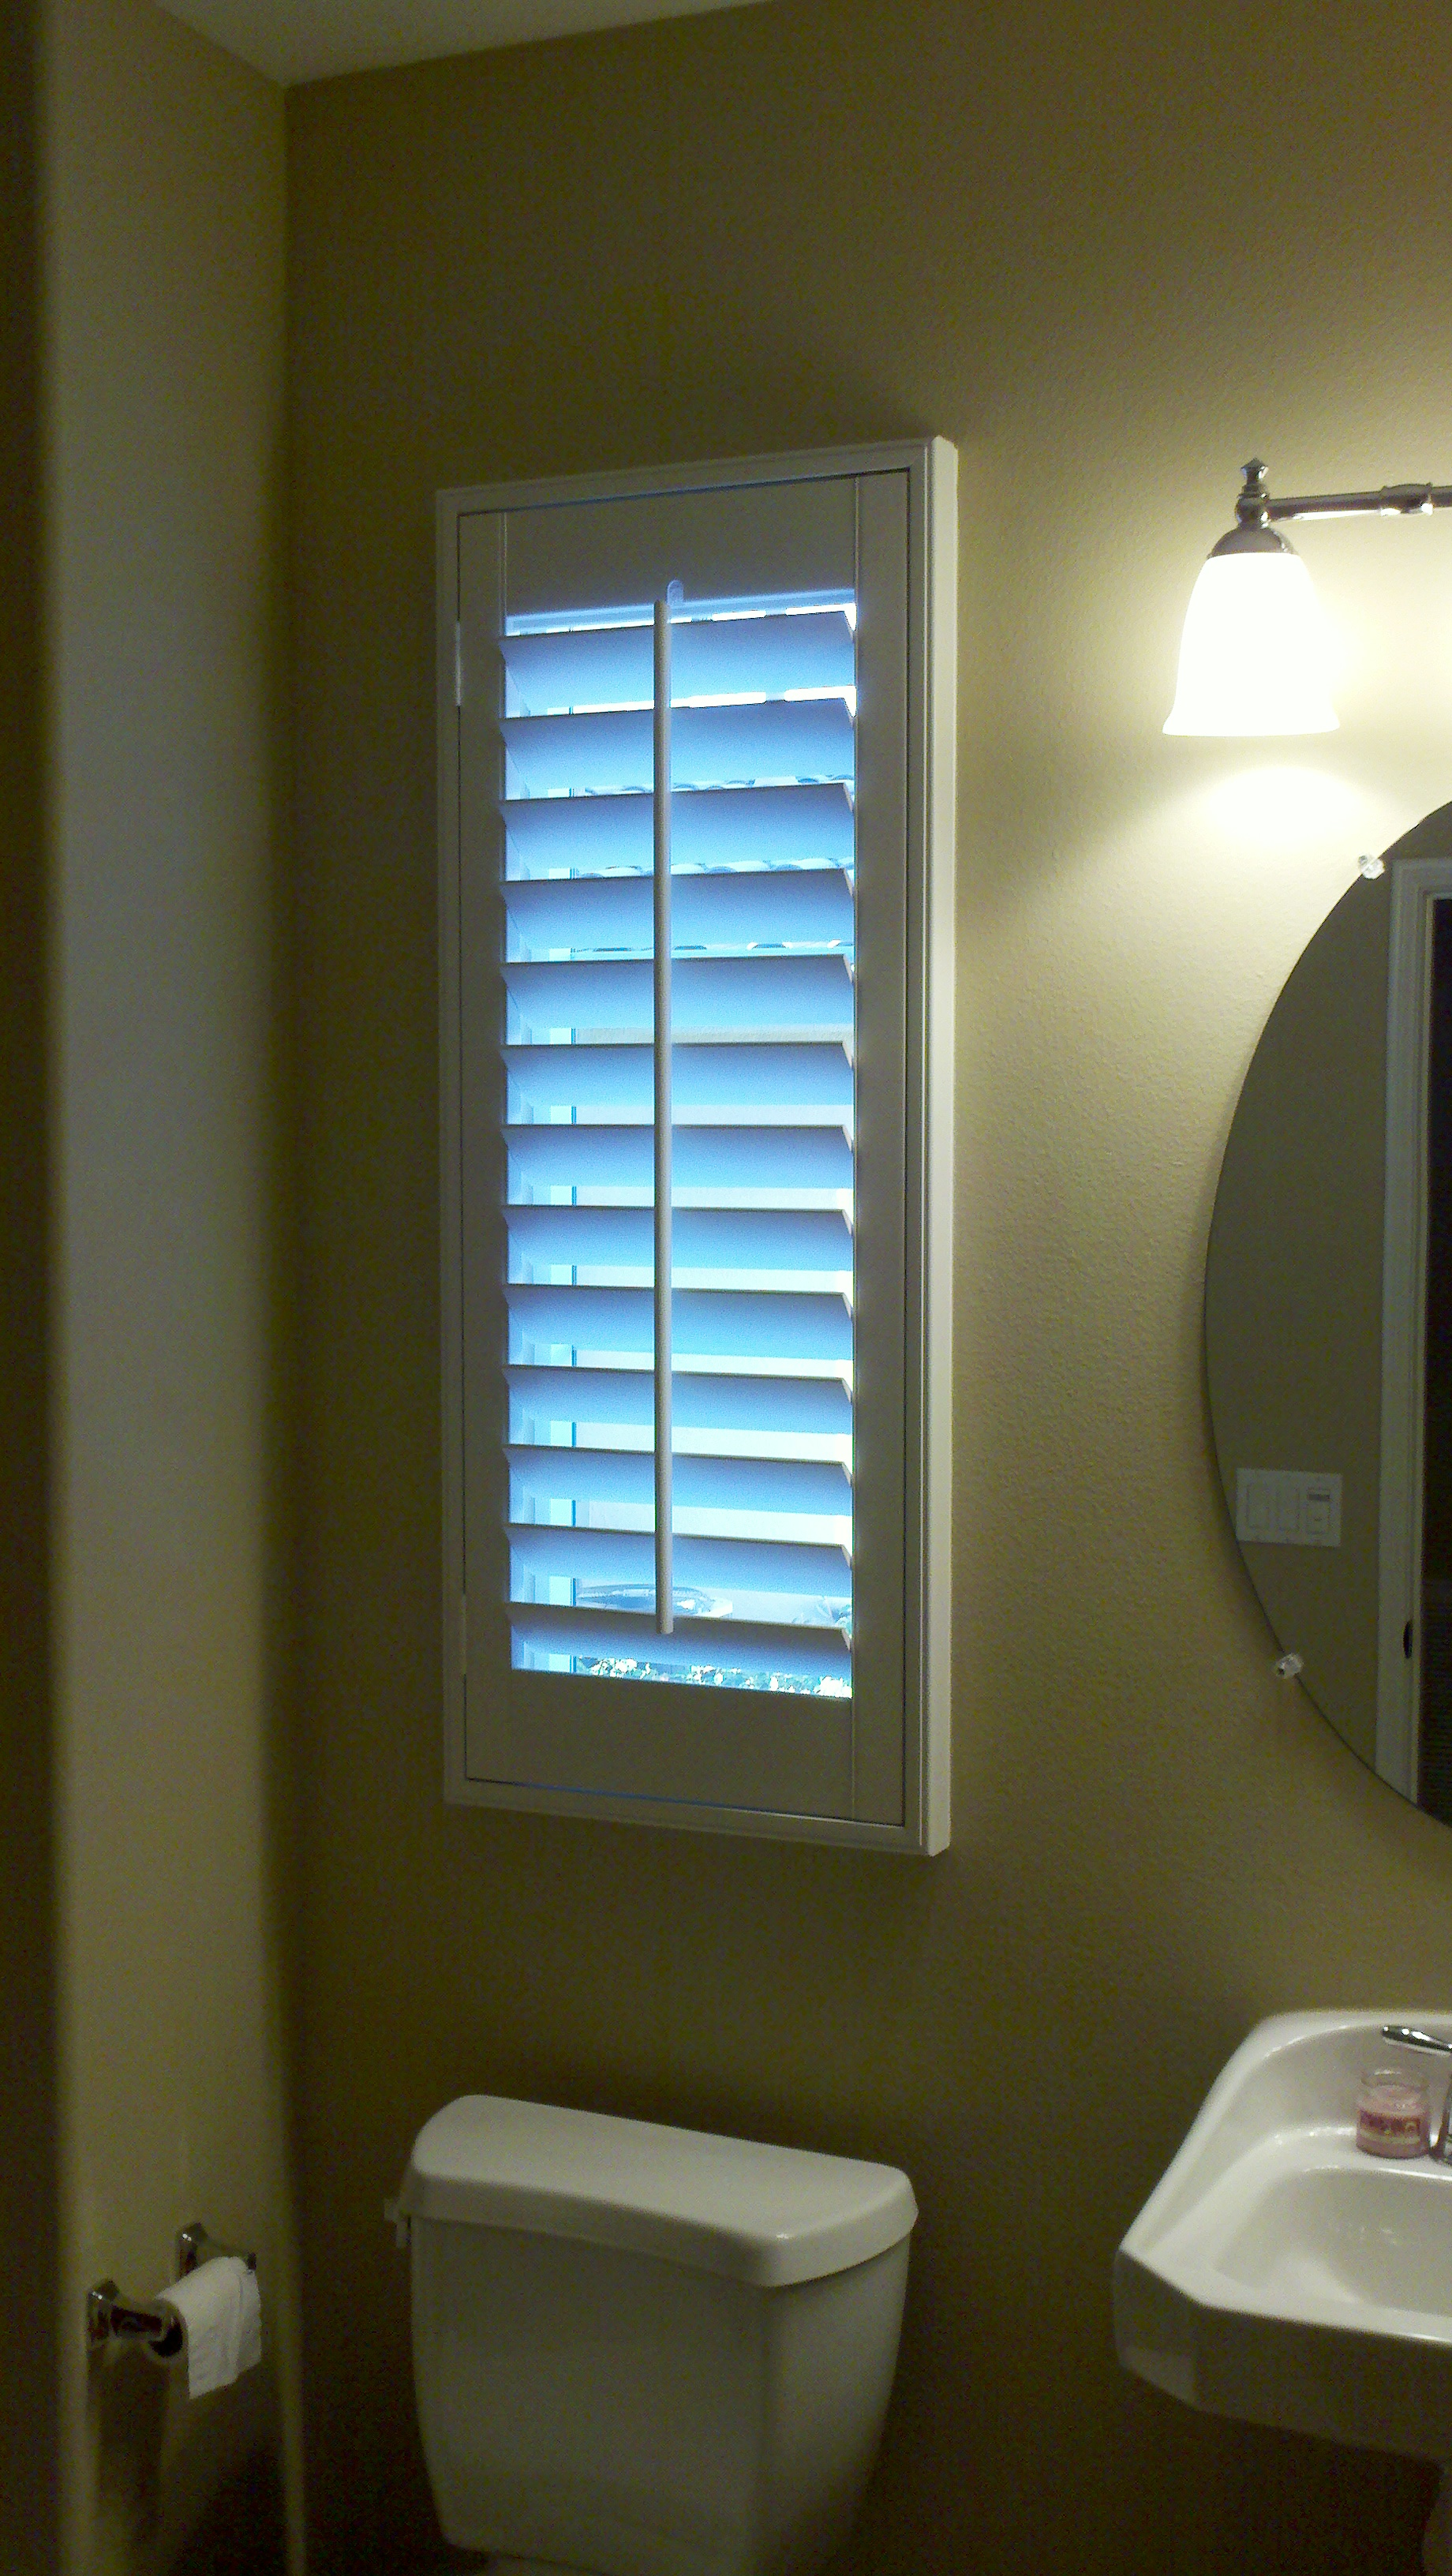 Plantation shutters il ca superior view shutters for Blinds bathroom window